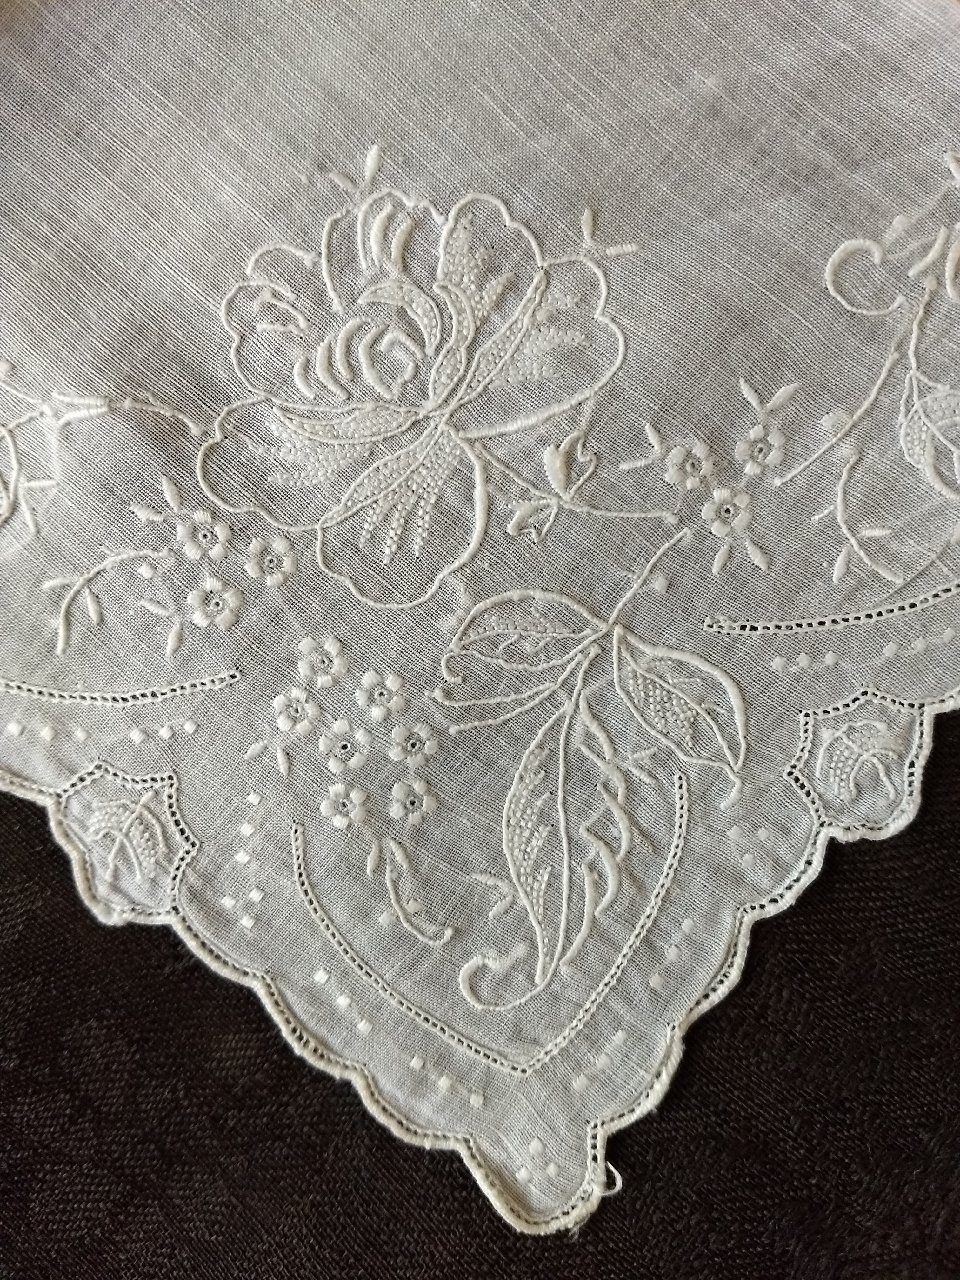 Vintage Madeira Embroidered Hankie Handkerchief  White Rose Flower Border